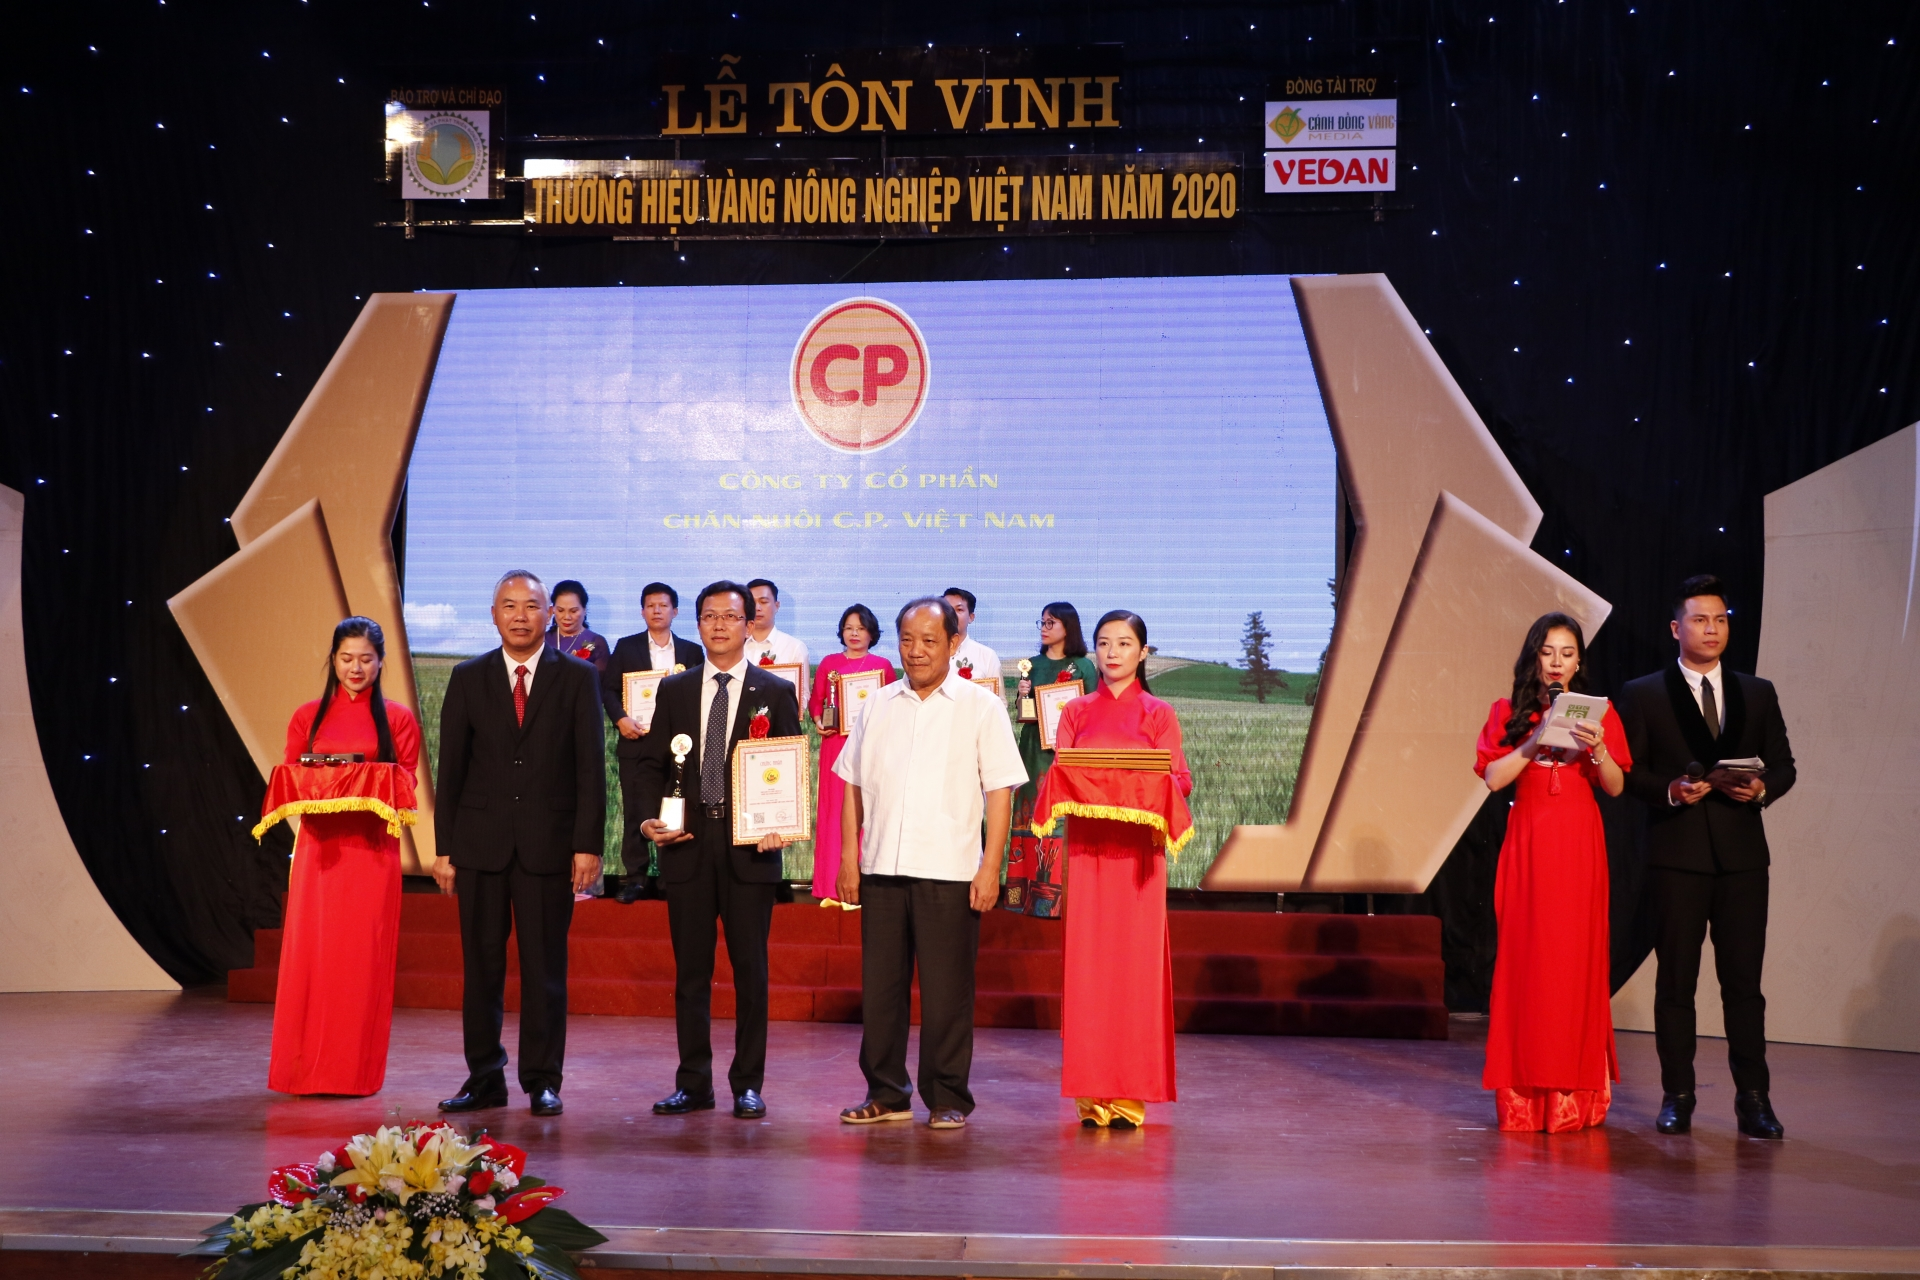 C.P. wins Gold Brand of Vietnam's Agriculture award